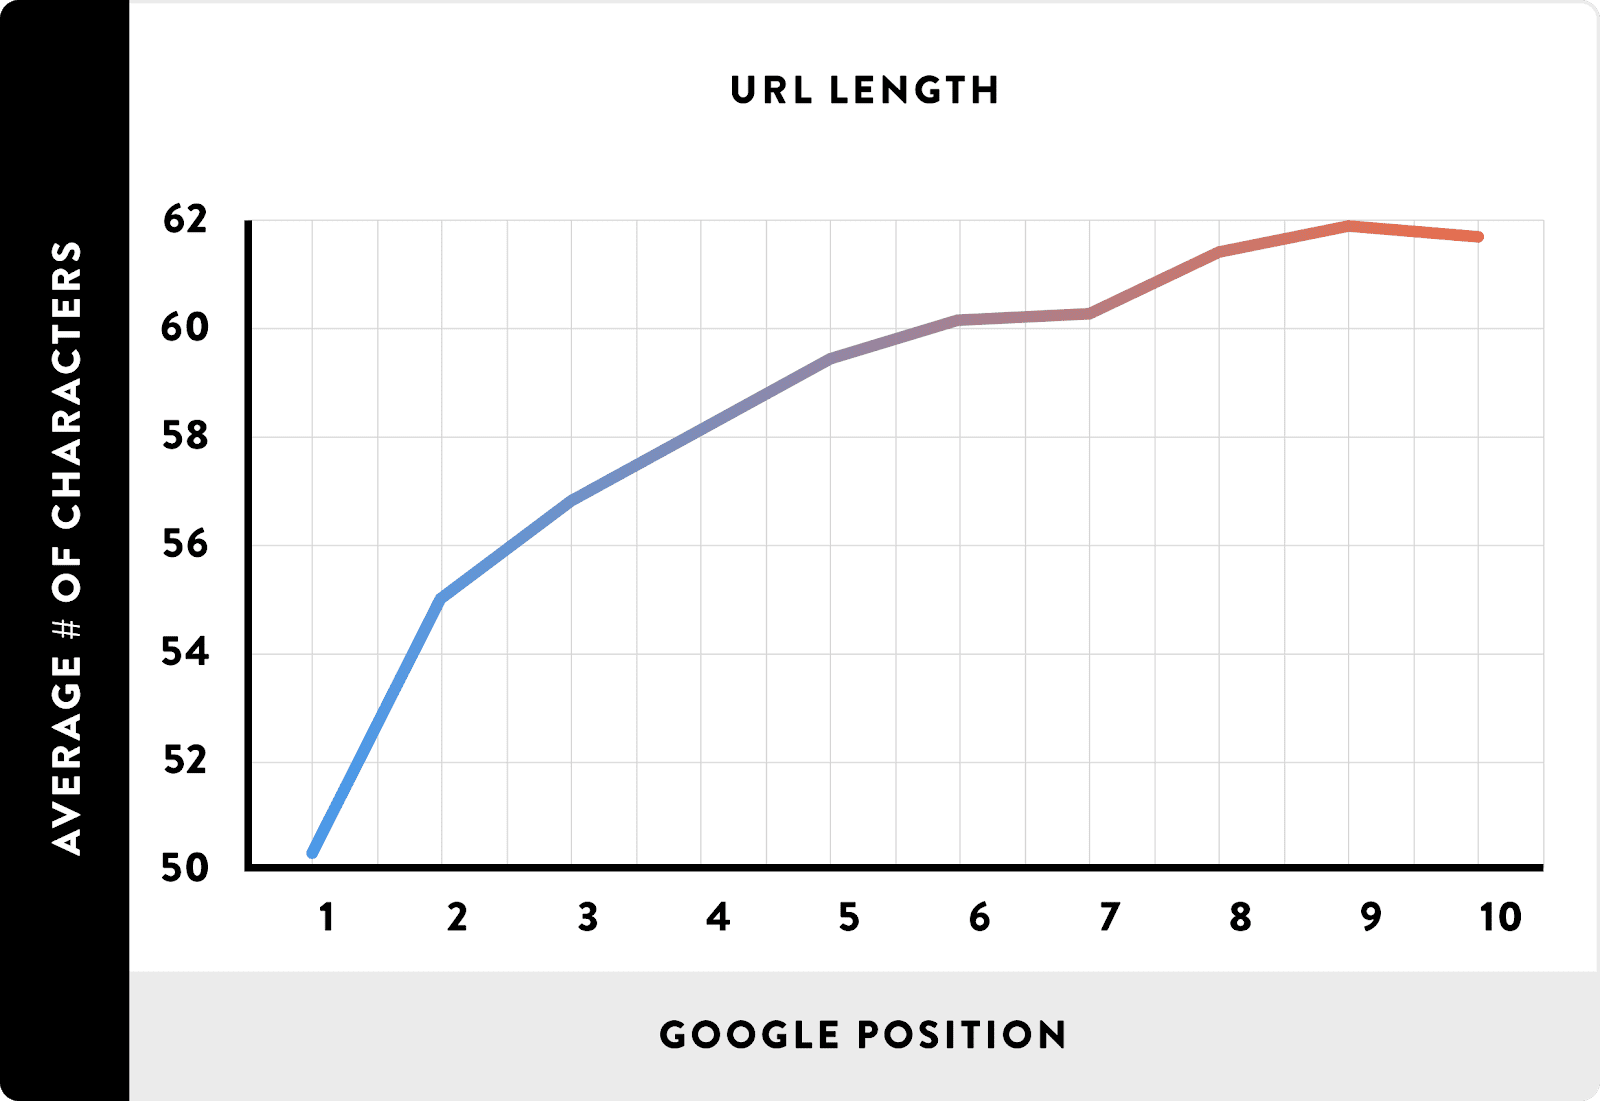 shorter URL is found to be a better ranking on Google